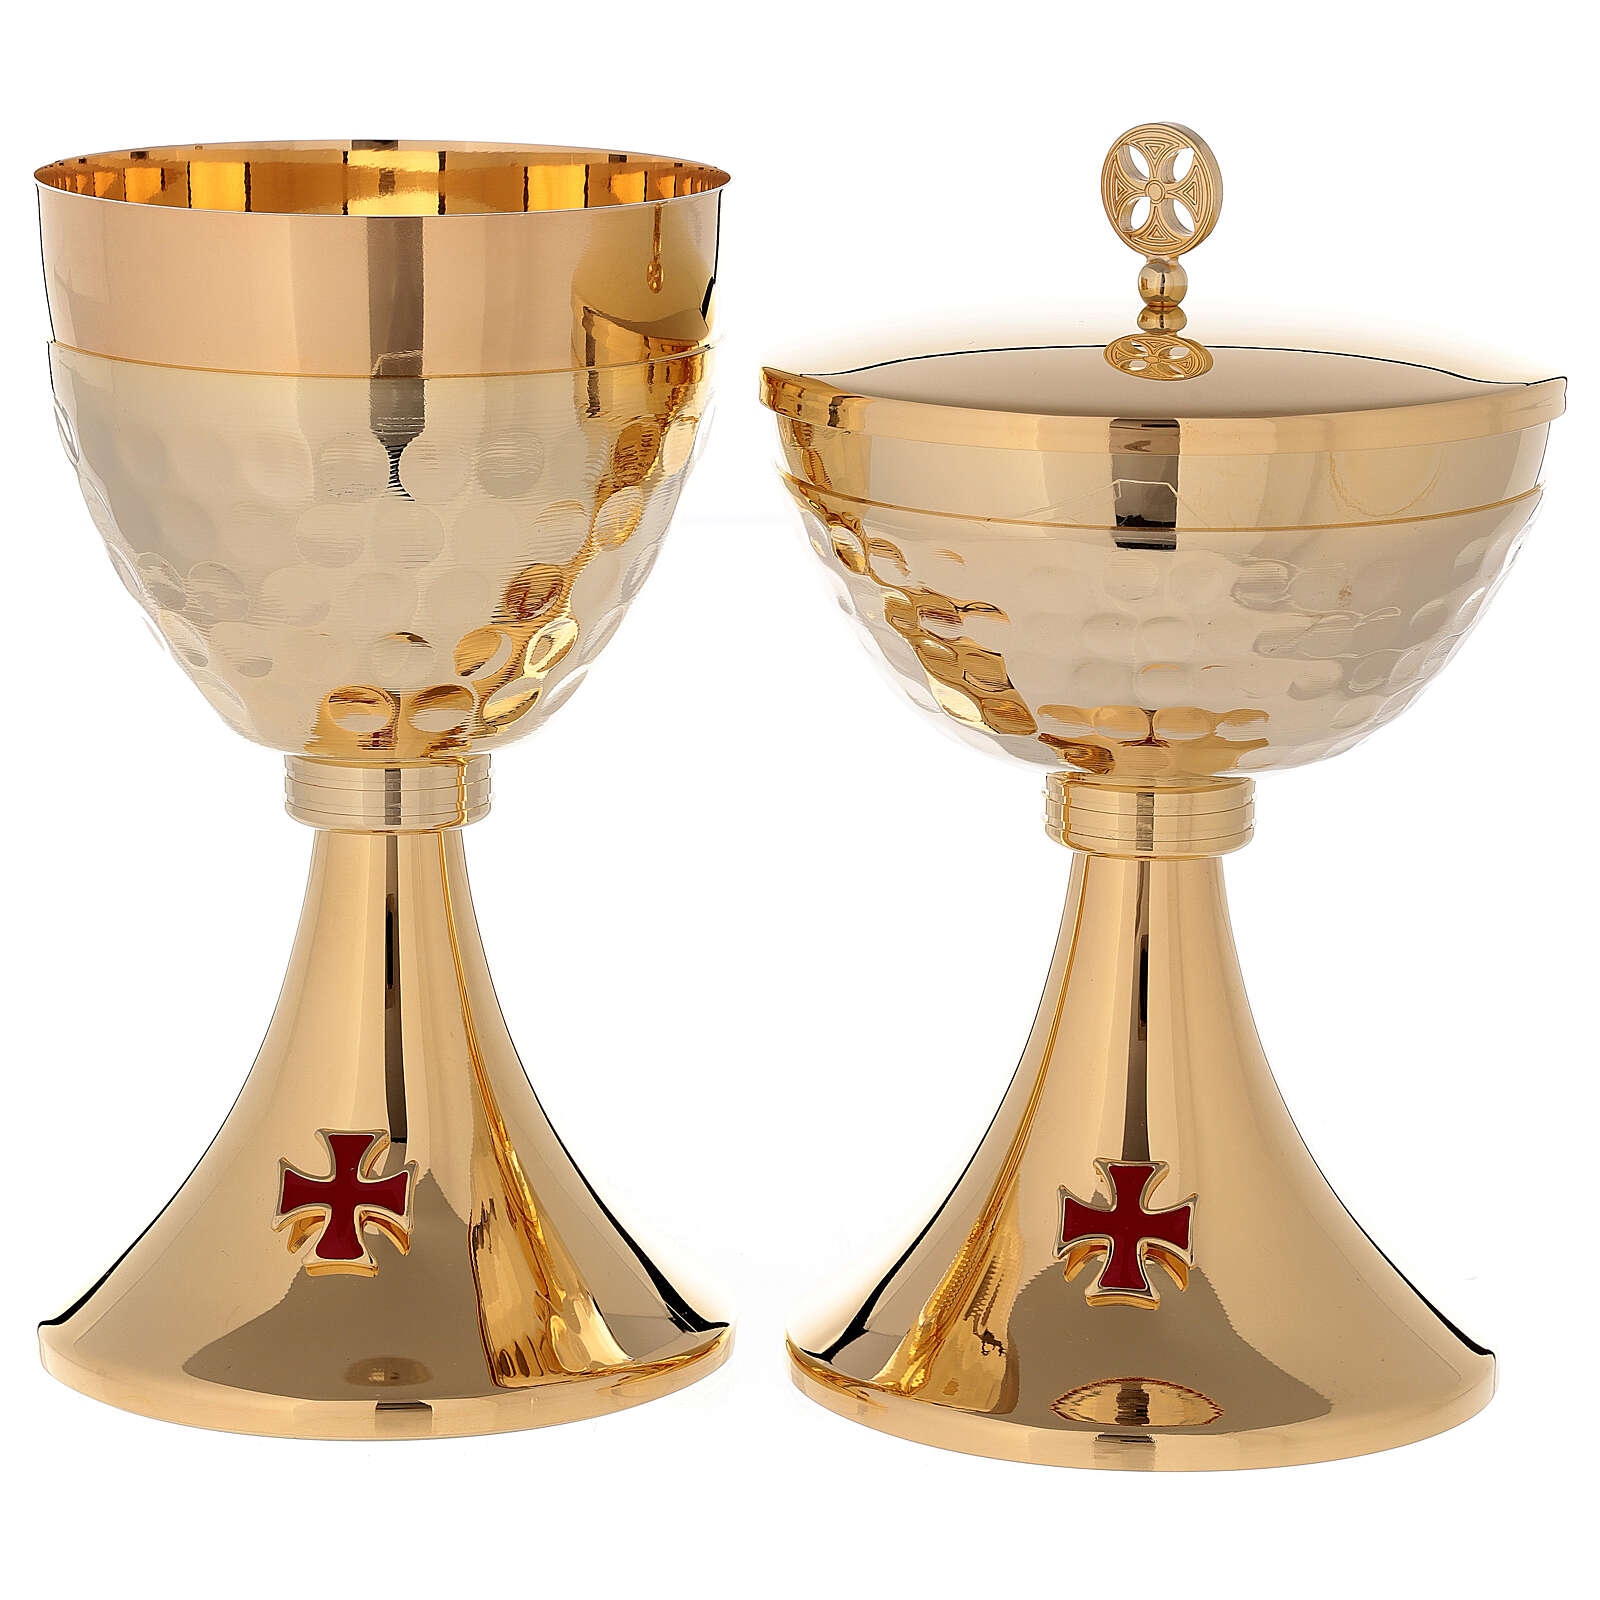 Chalice ciborium 24-karat gold plated brass enamelled cross and hammered cup 4